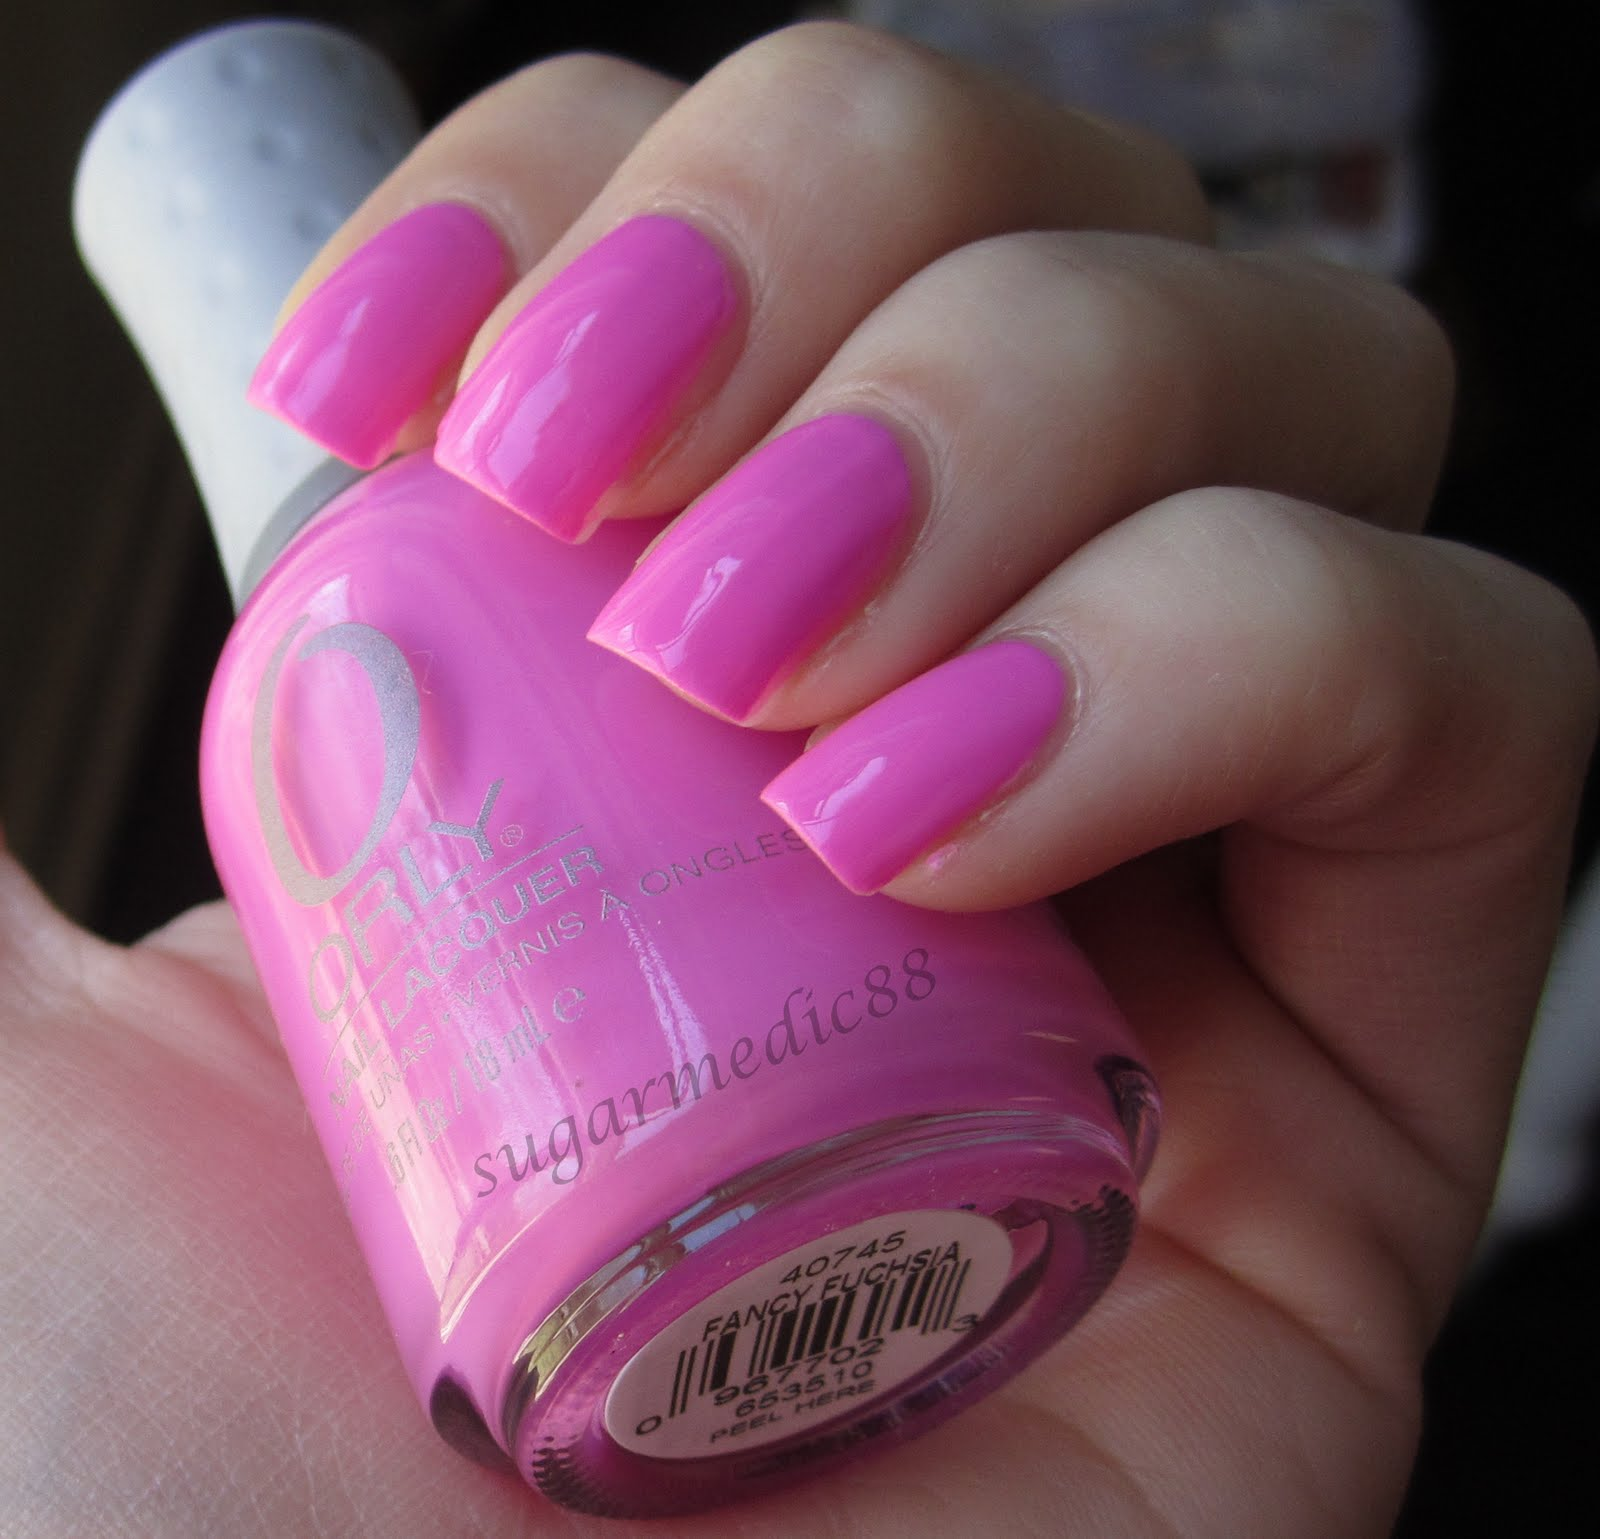 The Polished Medic: Orly Fancy Fuchsia - the perfect Barbie pink